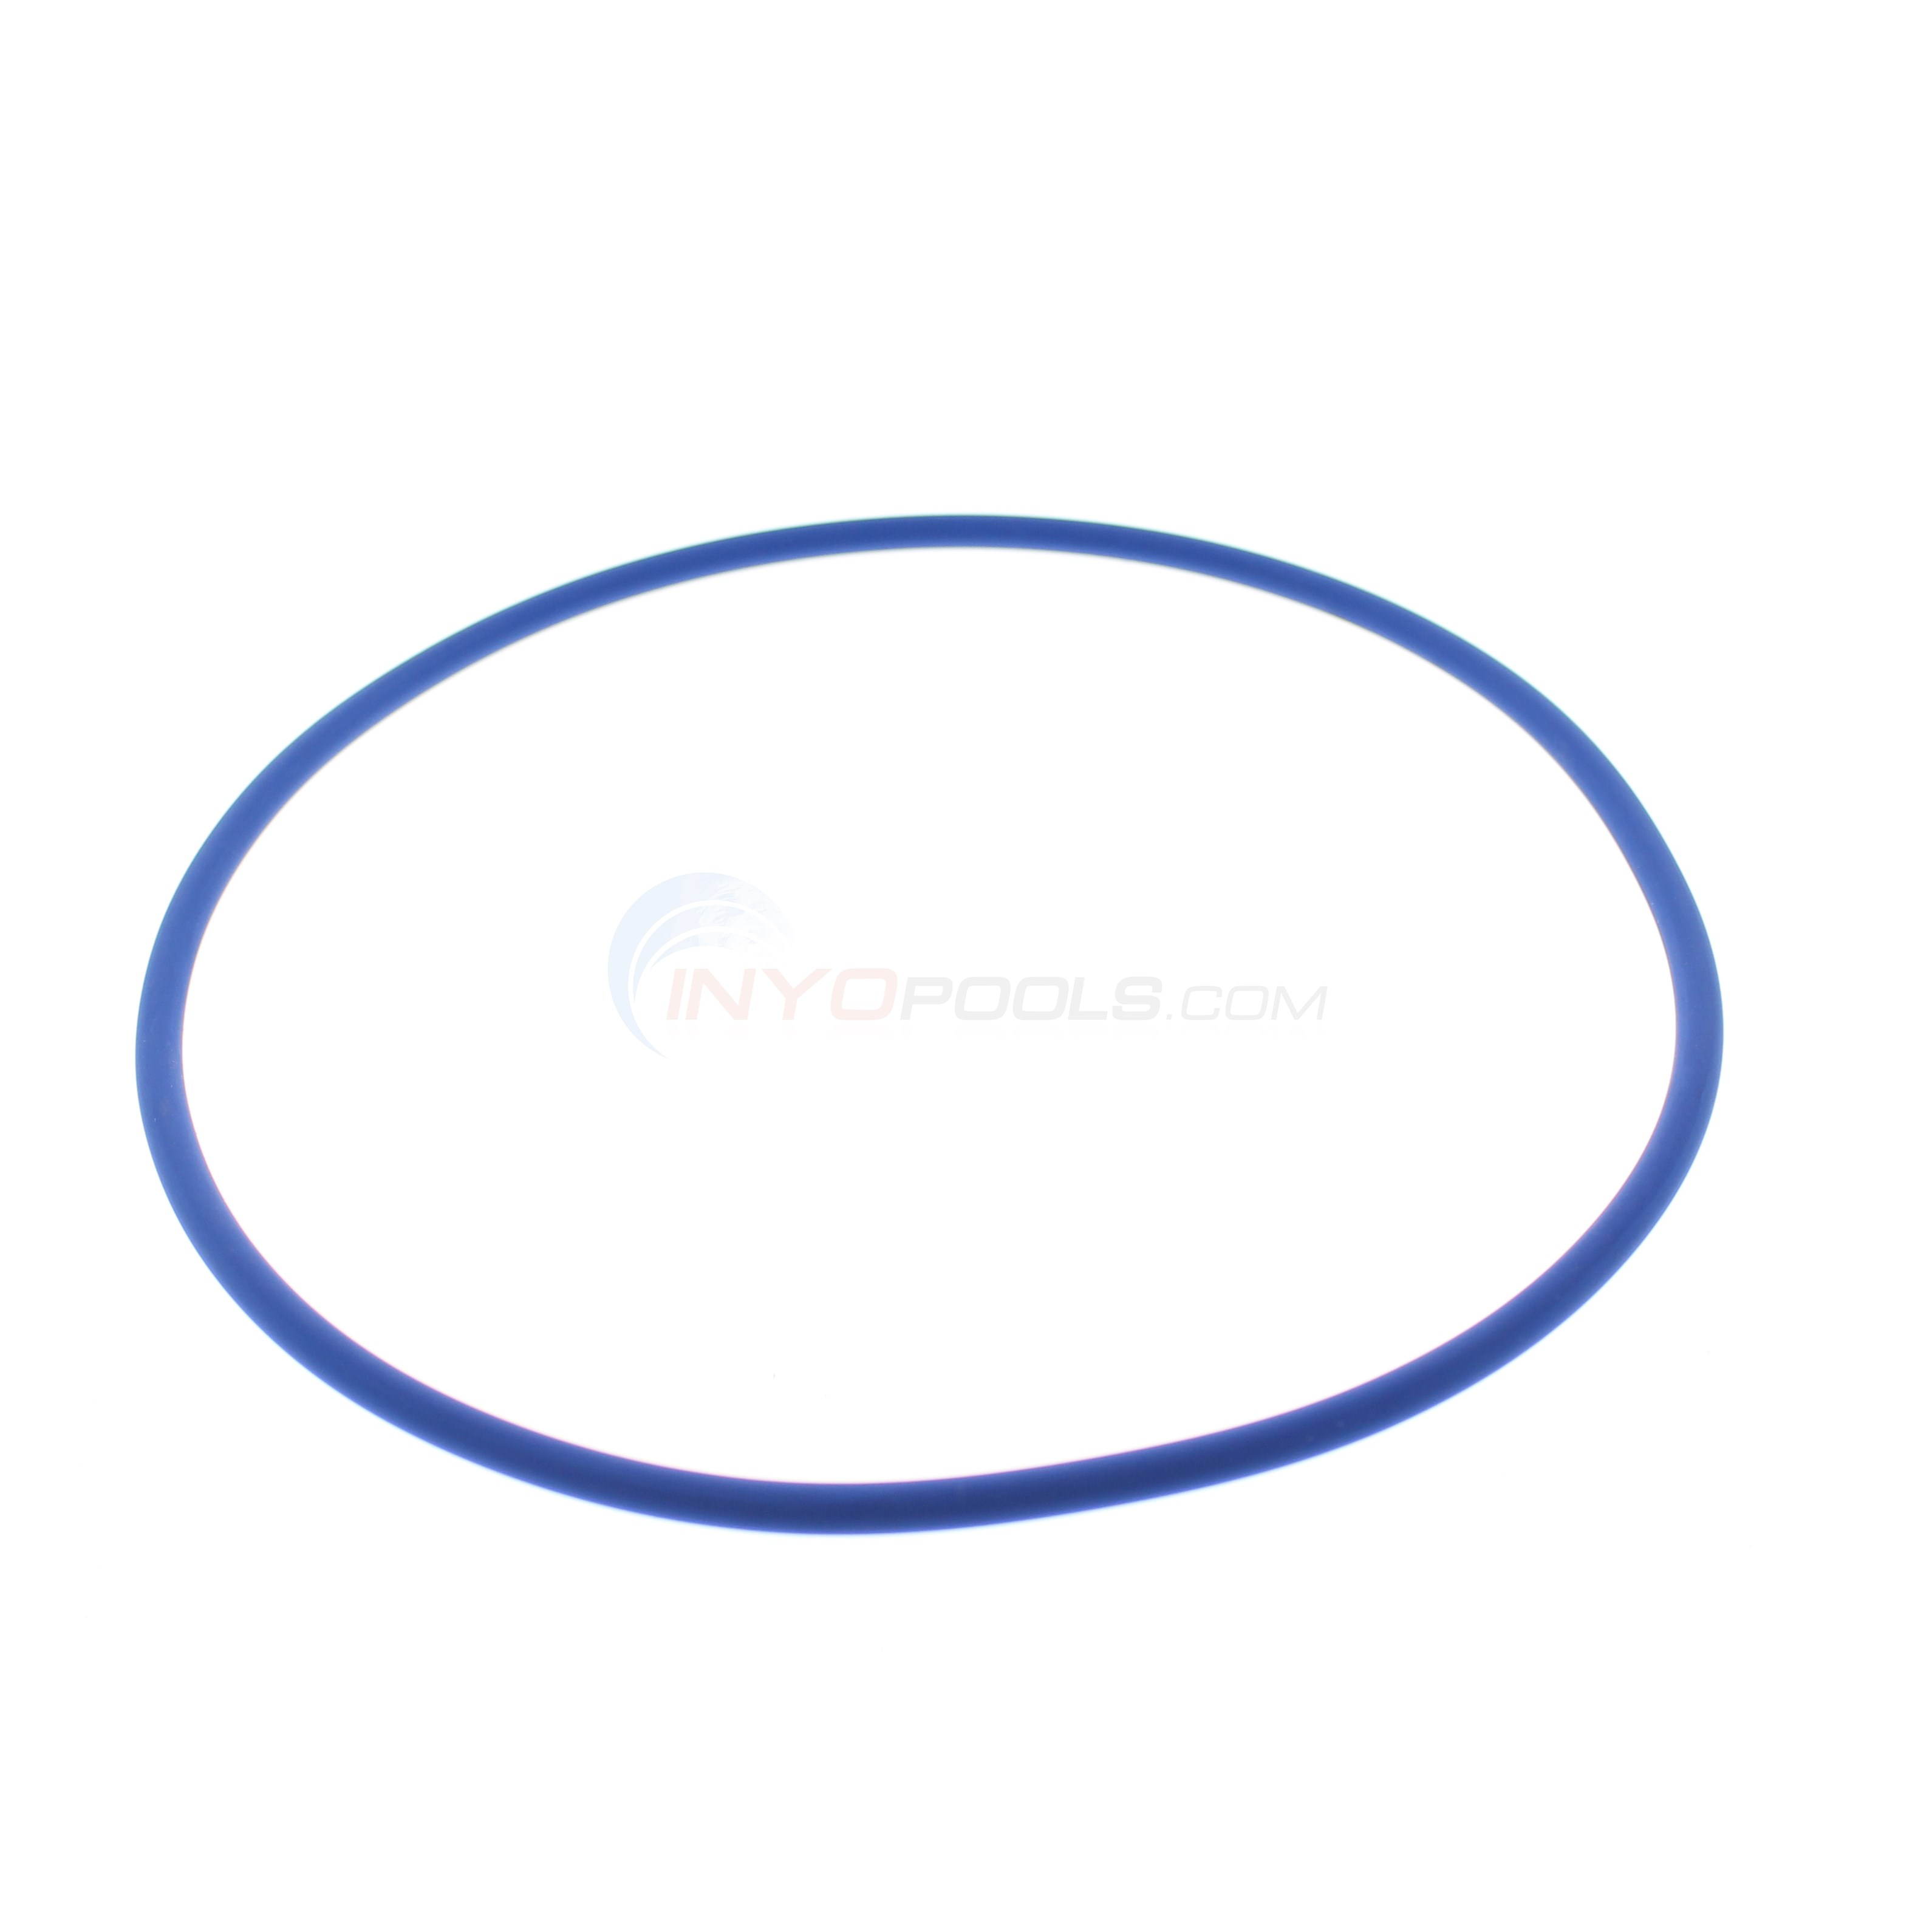 "Valve To Filter Oem O-ring (blue), Id 6-3/4"", Od 7-1/8"""